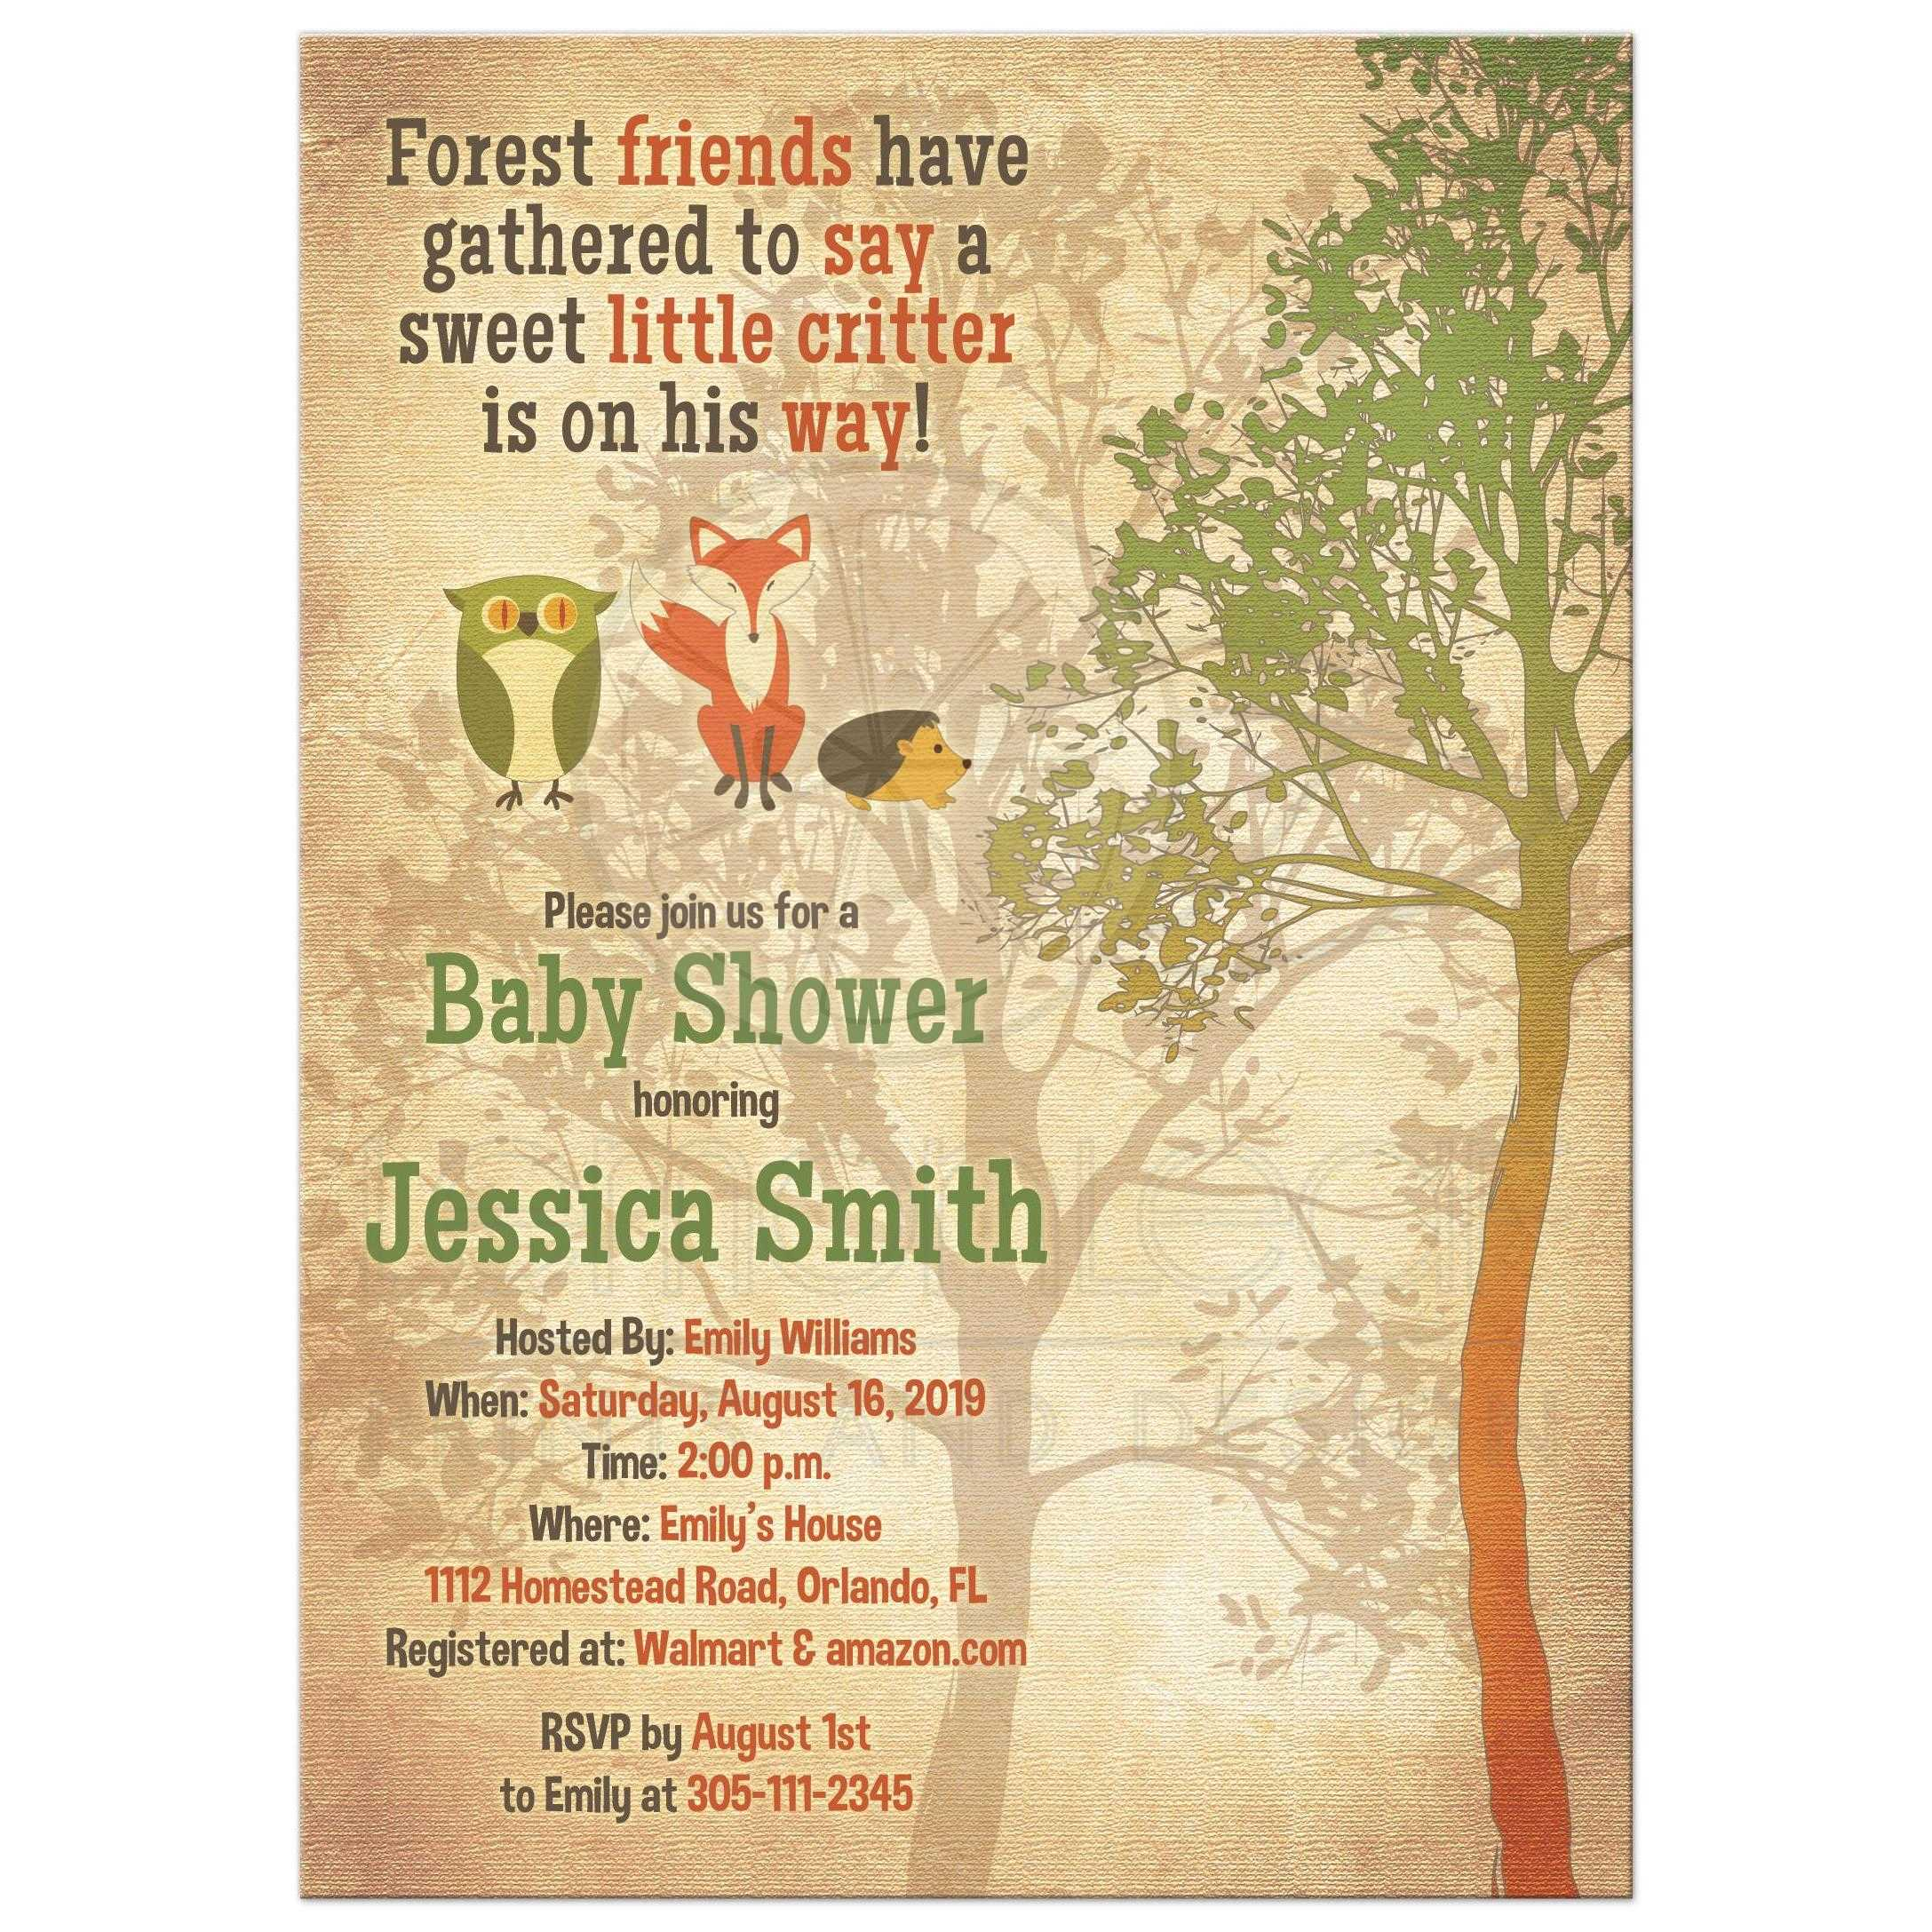 Woodland forest baby shower invitation fox owl hedgehog tree woodland forest critter baby shower invitation with owl fox hedgehog and tree front filmwisefo